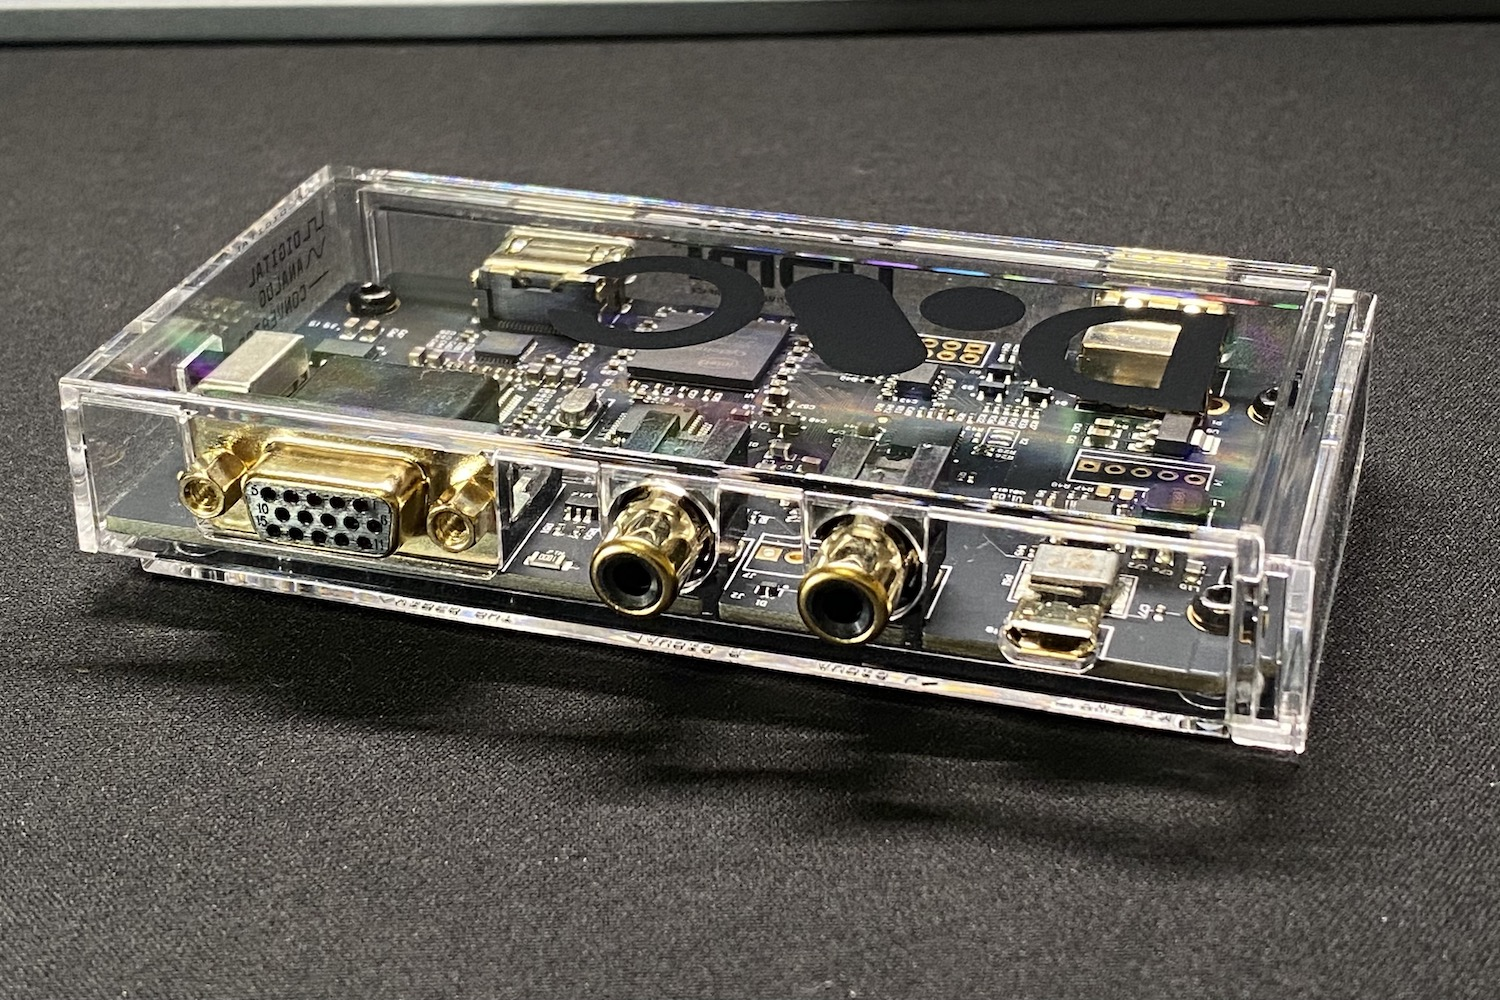 Hands on with the Analogue DAC Converter